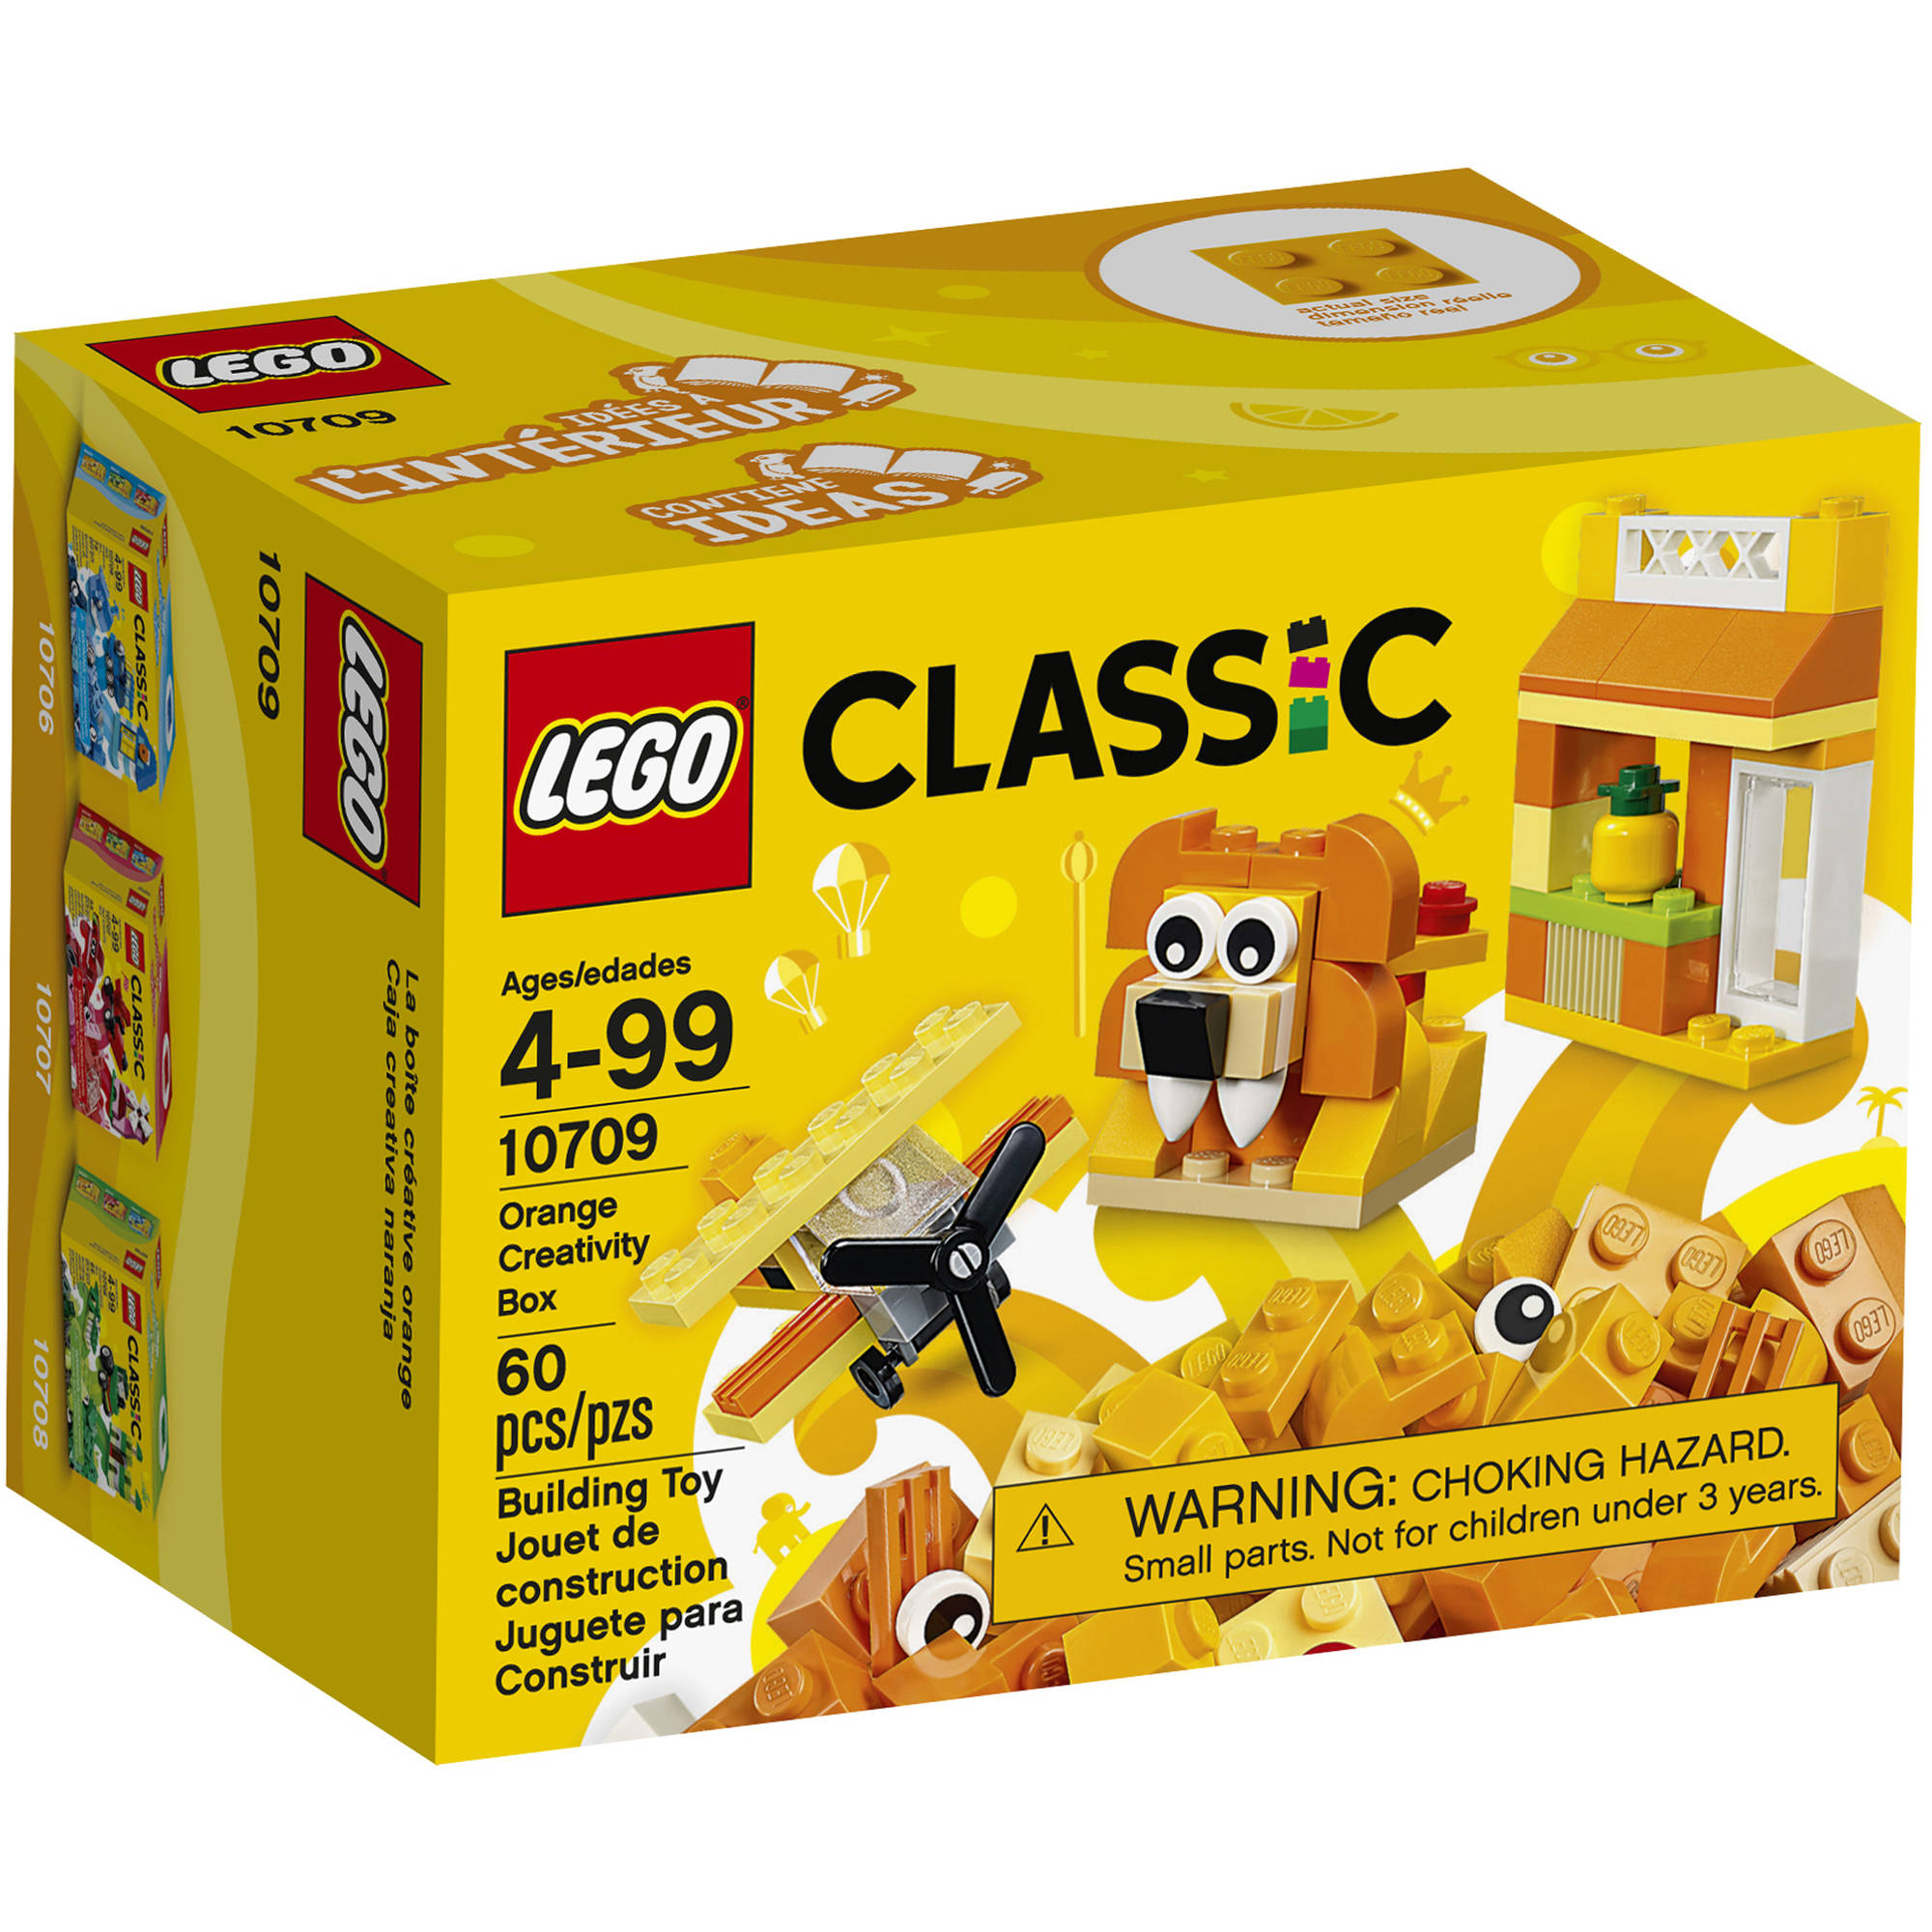 LEGO Classic Creativity Box, Orange 10709 (60 Pieces)